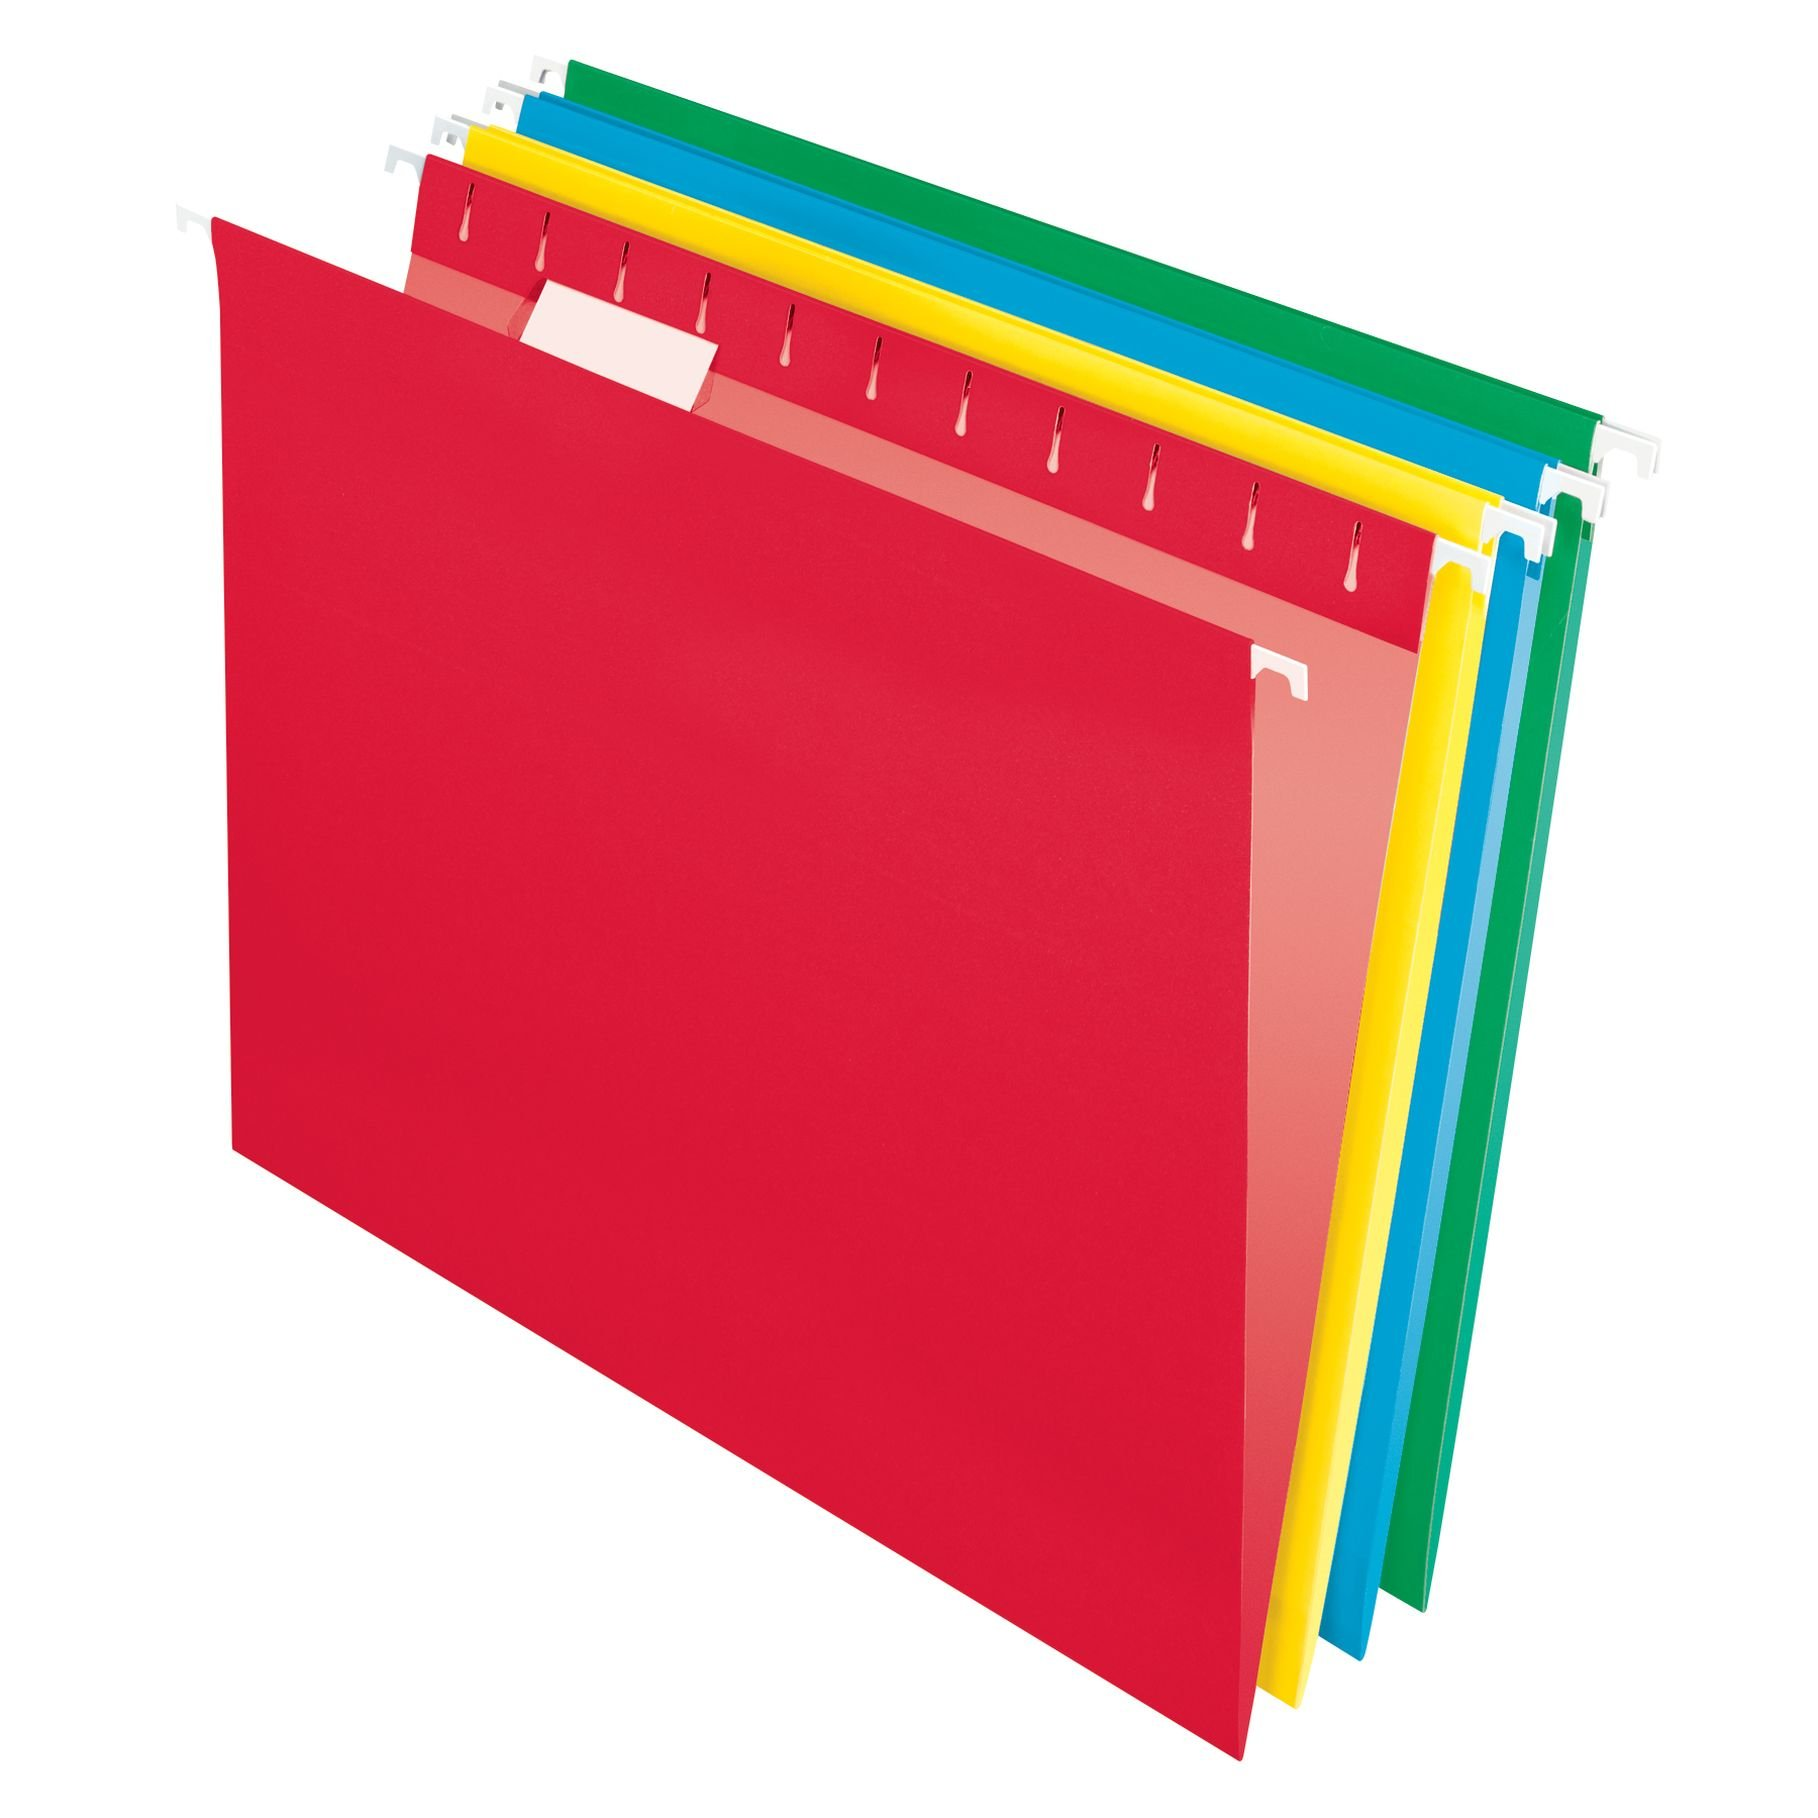 Pendaflex Essentials Hanging Folders, Letter Size, Assorted Colors, 25 per Box (75708)